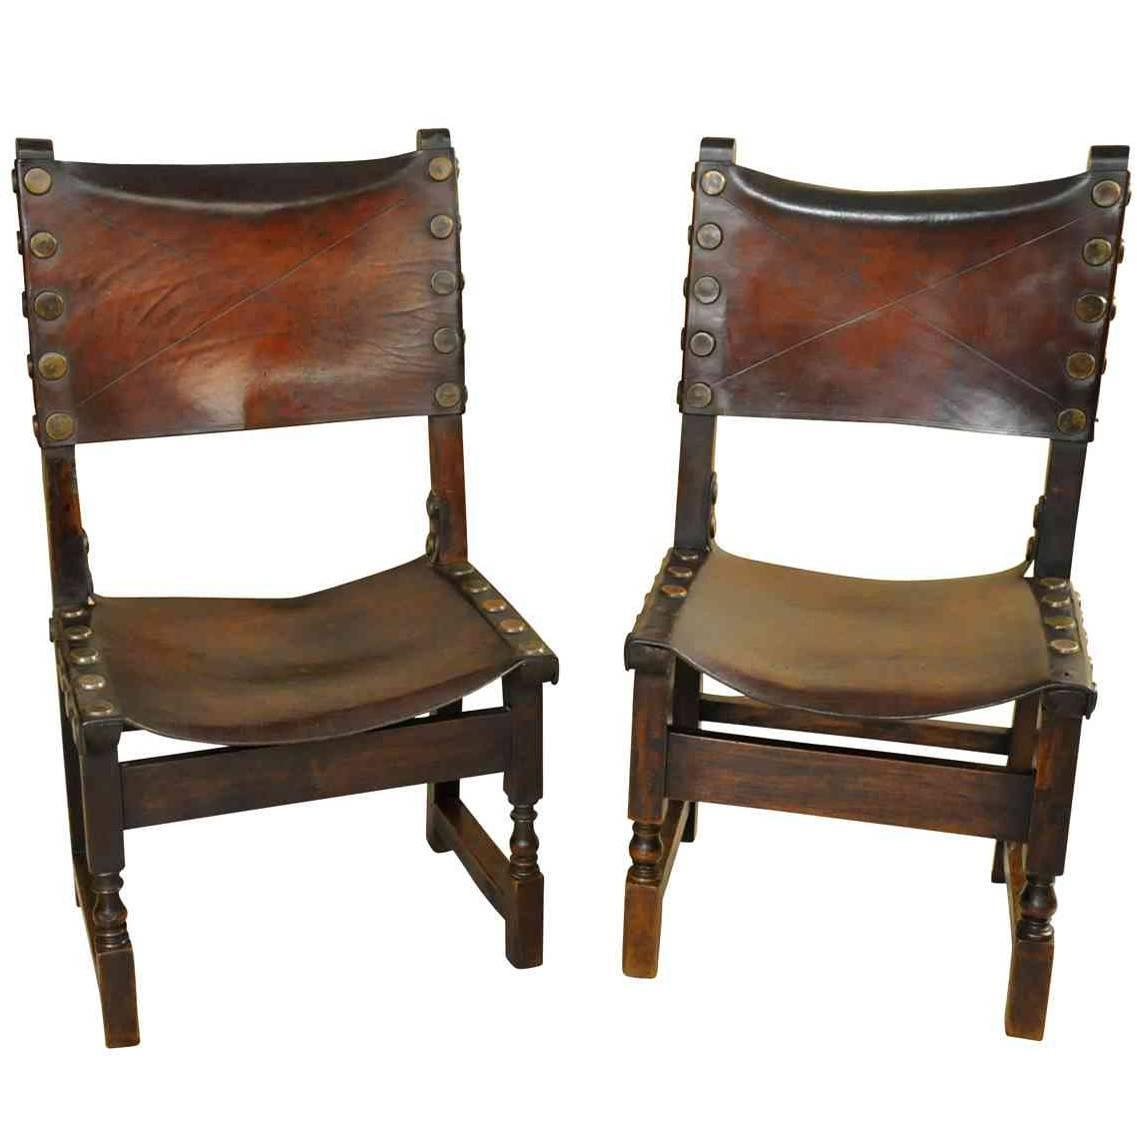 Pair of 17th century spanish leather chairs at 1stdibs for Furniture in spanish